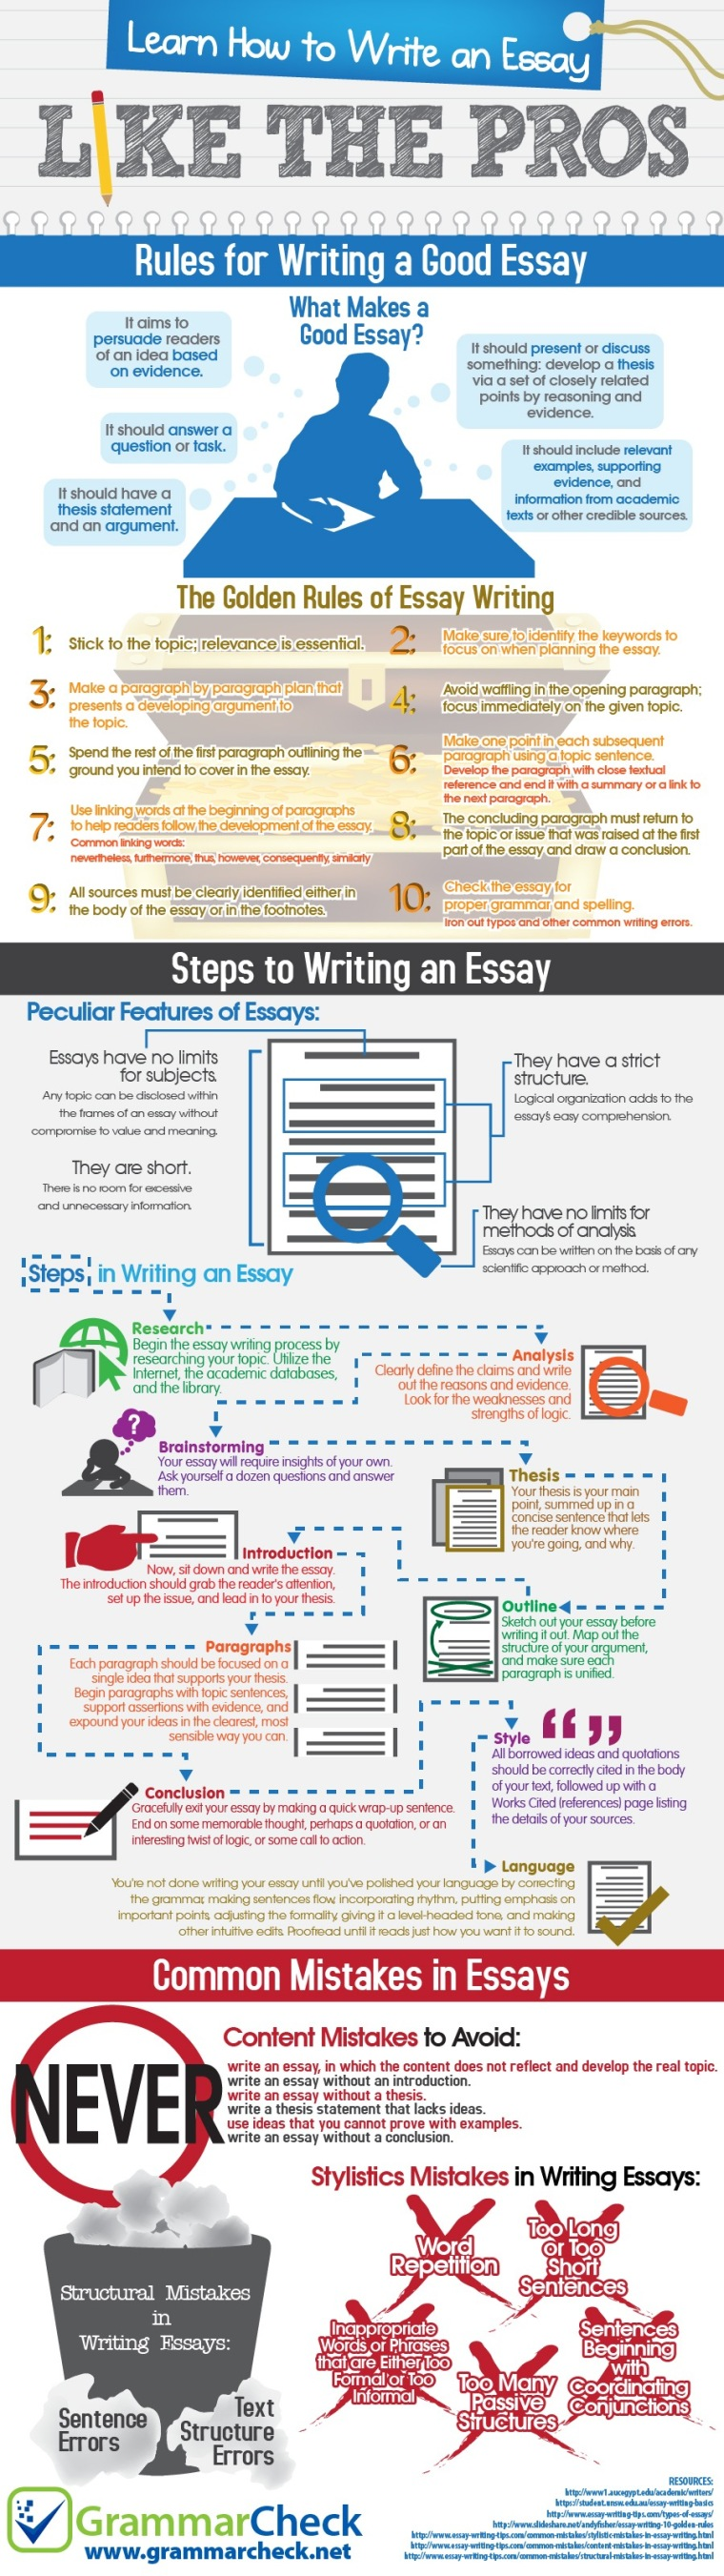 9749 rules for writing a good essay reading writing coffee did you this helpful please let me know in the comments